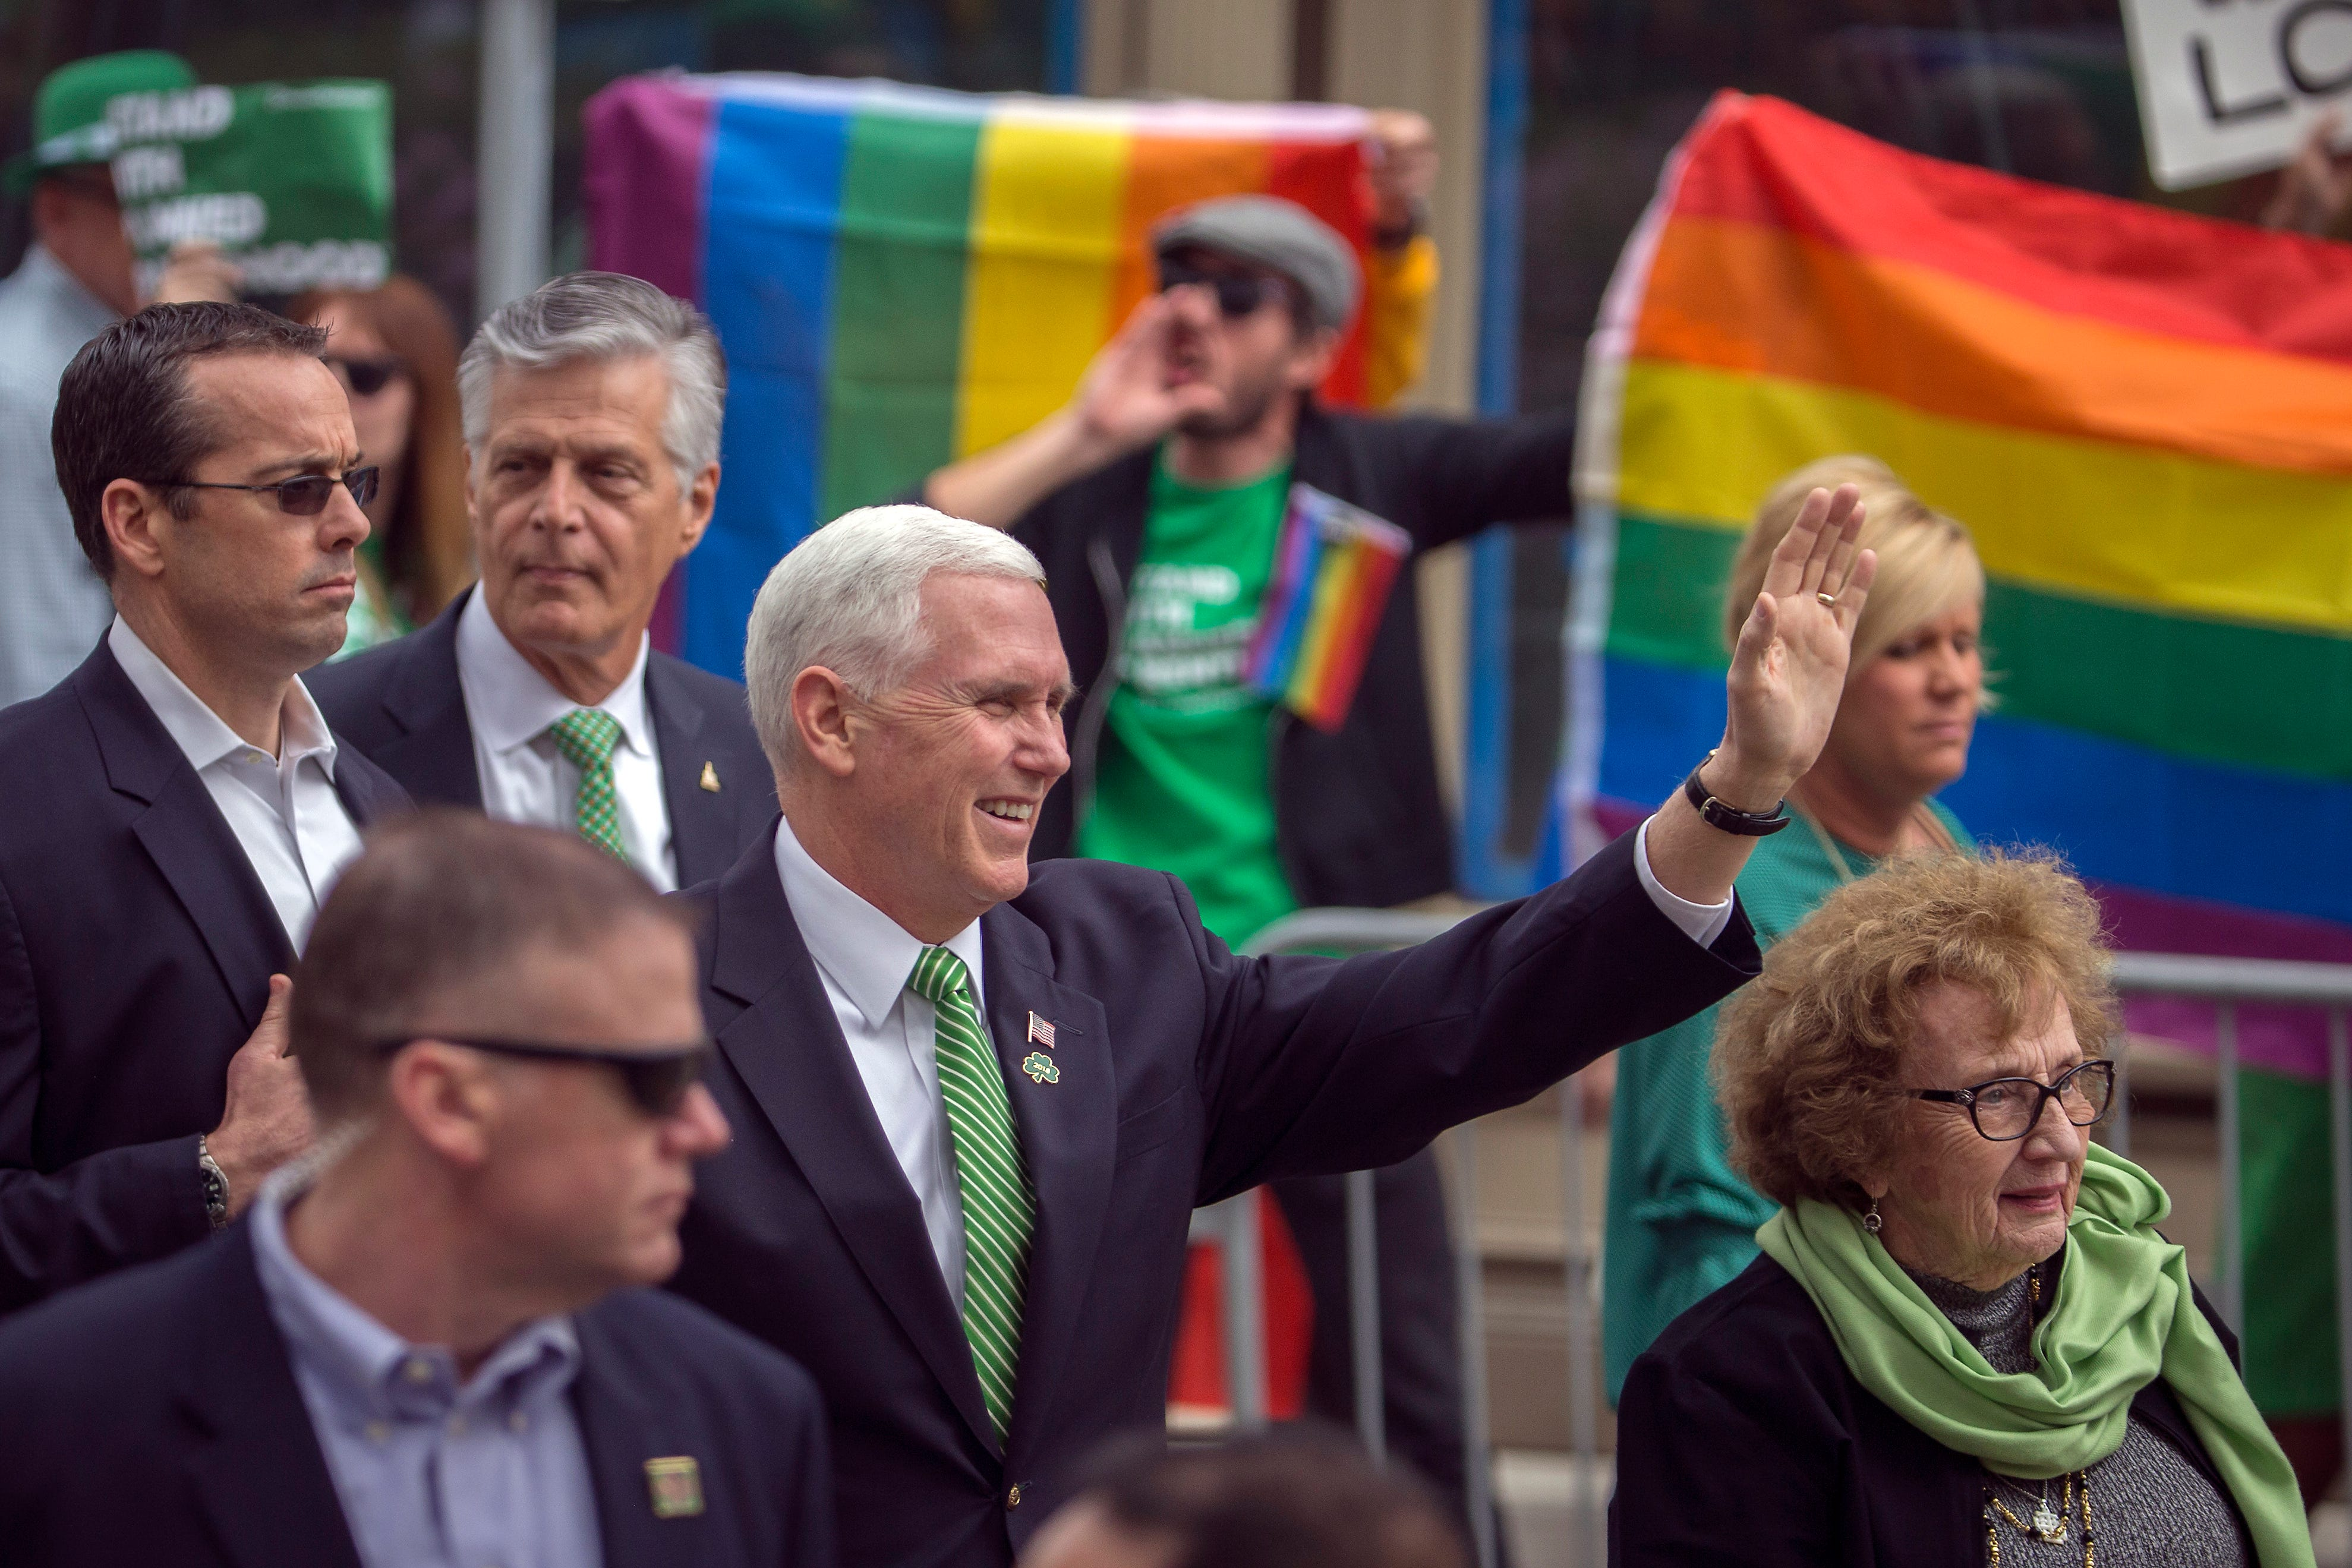 Mike Pence S Ireland Pride Inspired By Family Not Always Reciprocated